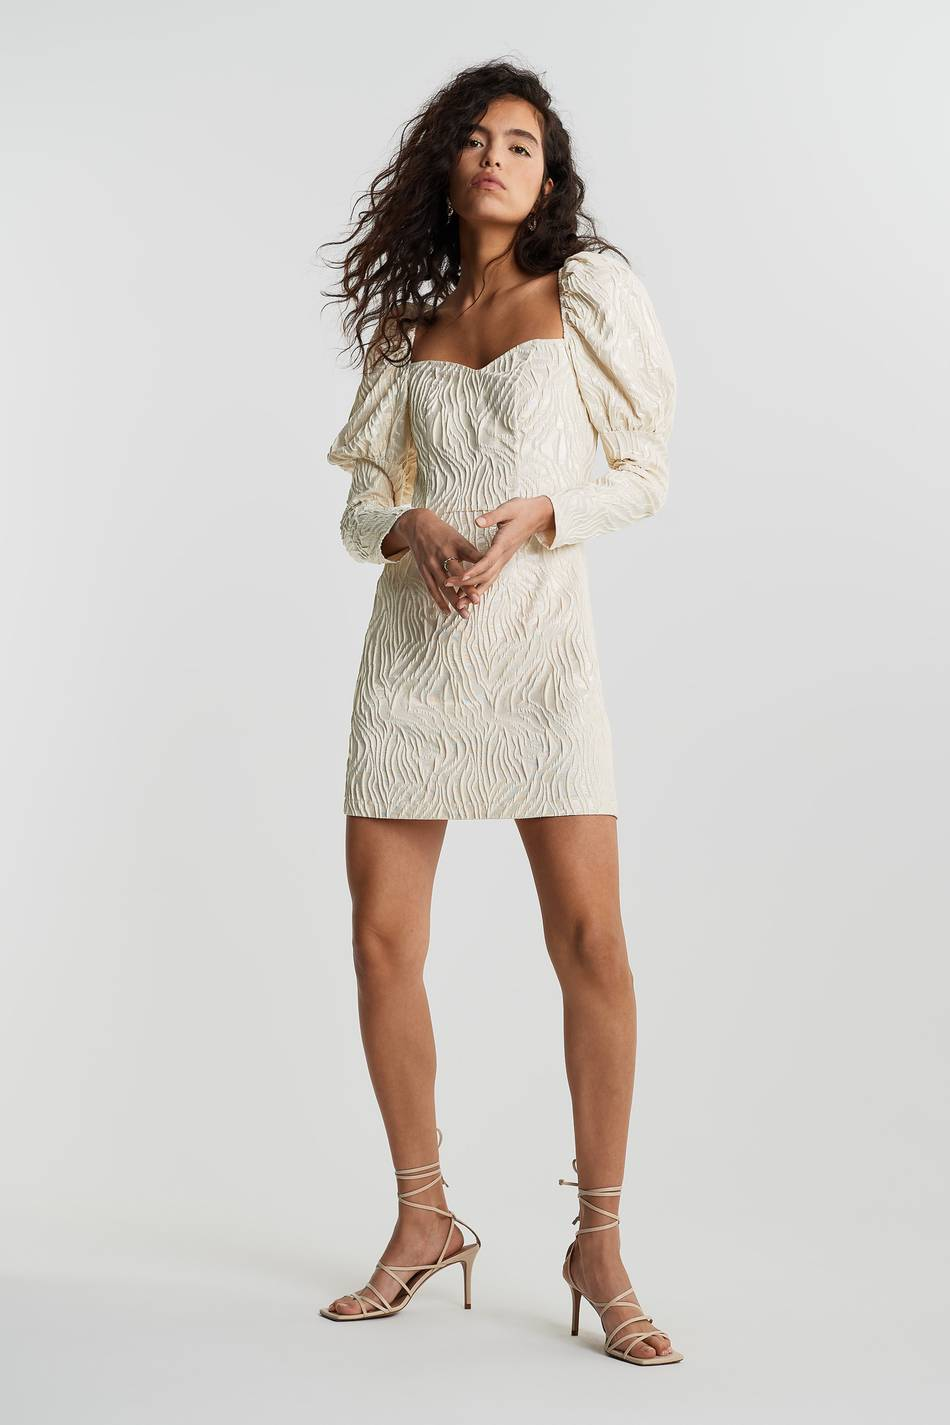 Gina Tricot Dolores dress